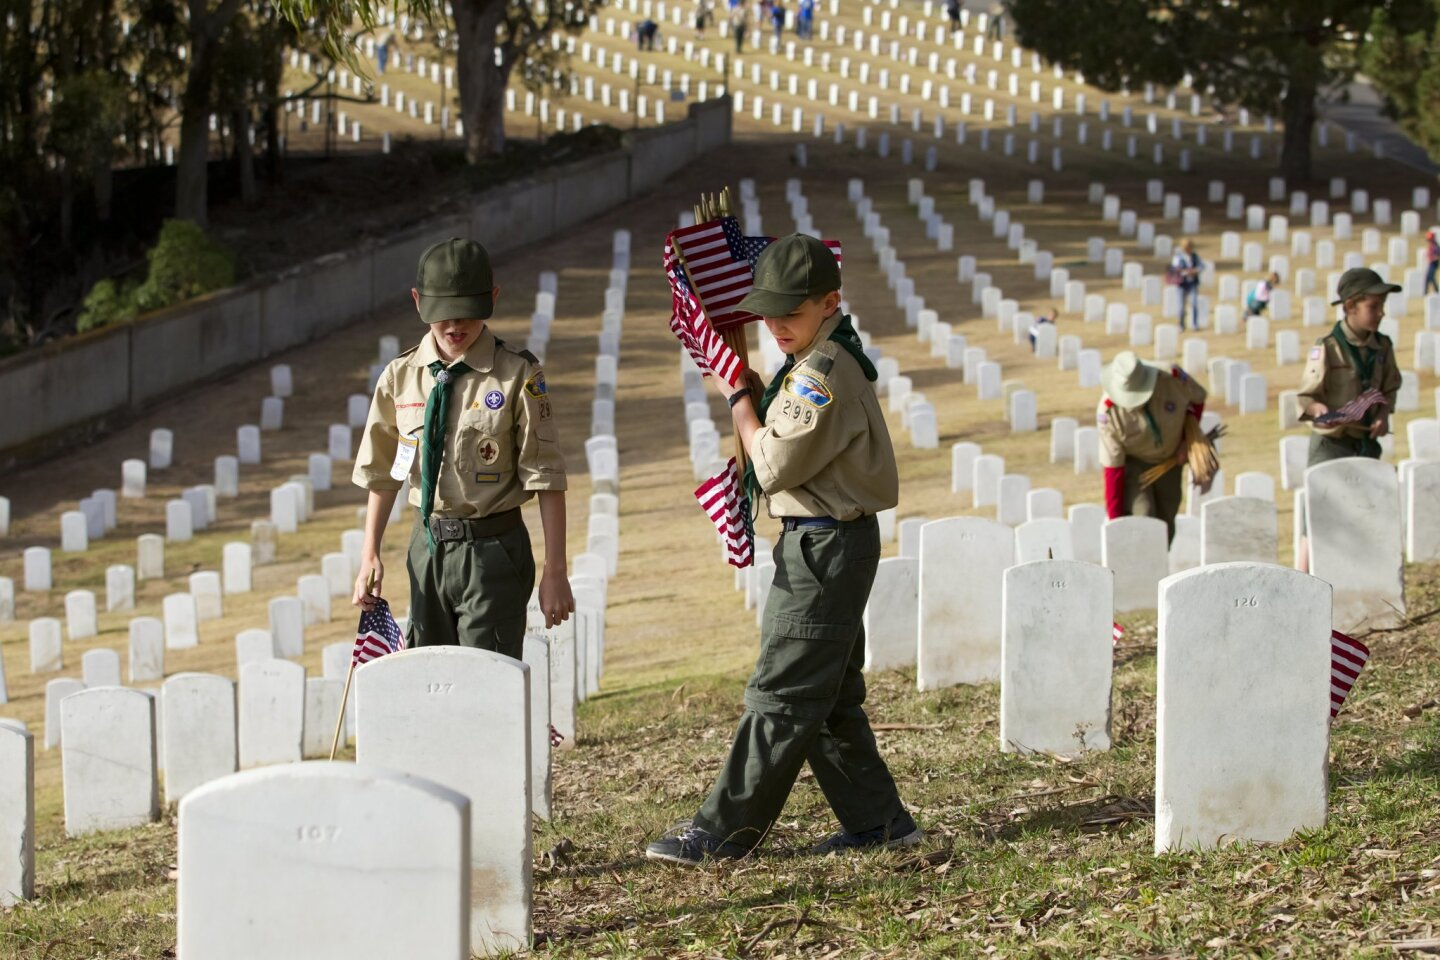 Thousands of scouts from the San Diego area took part in the annual Fort Rosecrans Memorial Day Flag Placement Service Project.